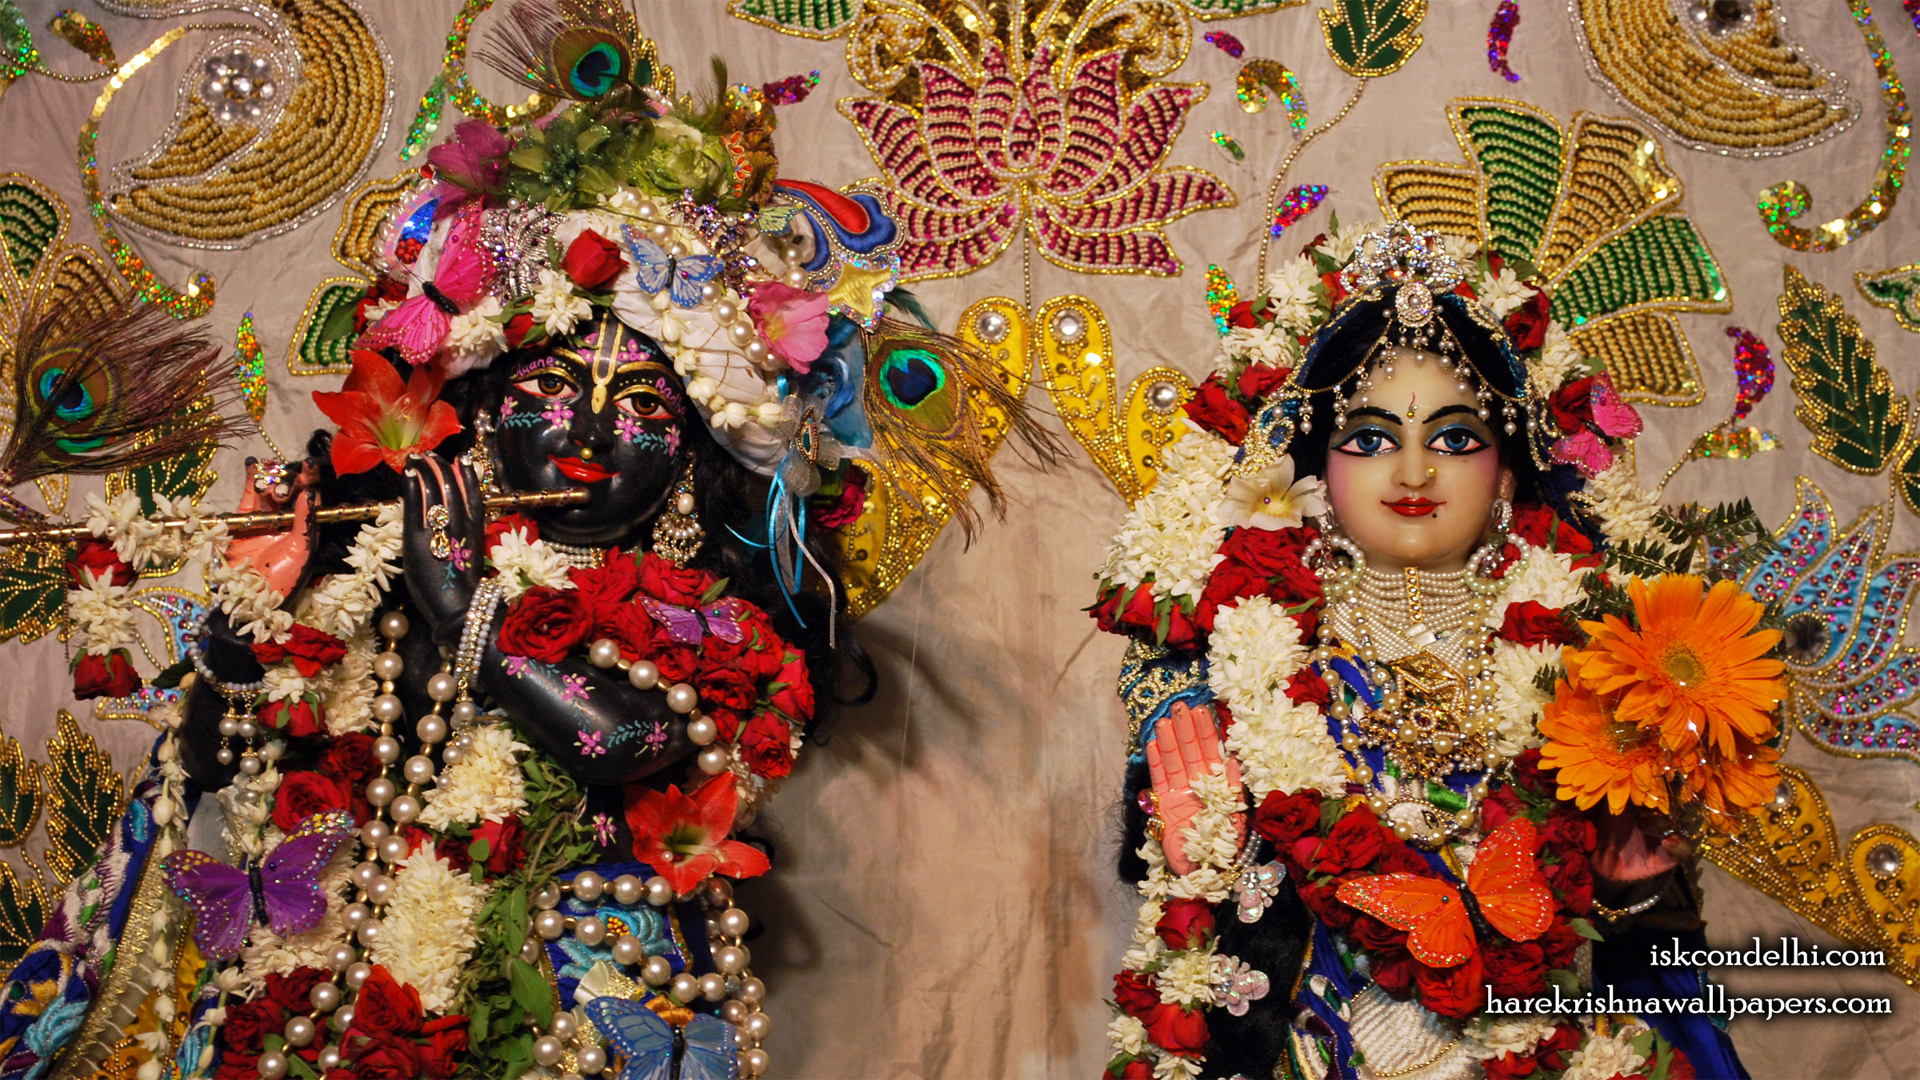 Sri Sri Radha Parthasarathi Close up Wallpaper (002) Size 1920x1080 Download